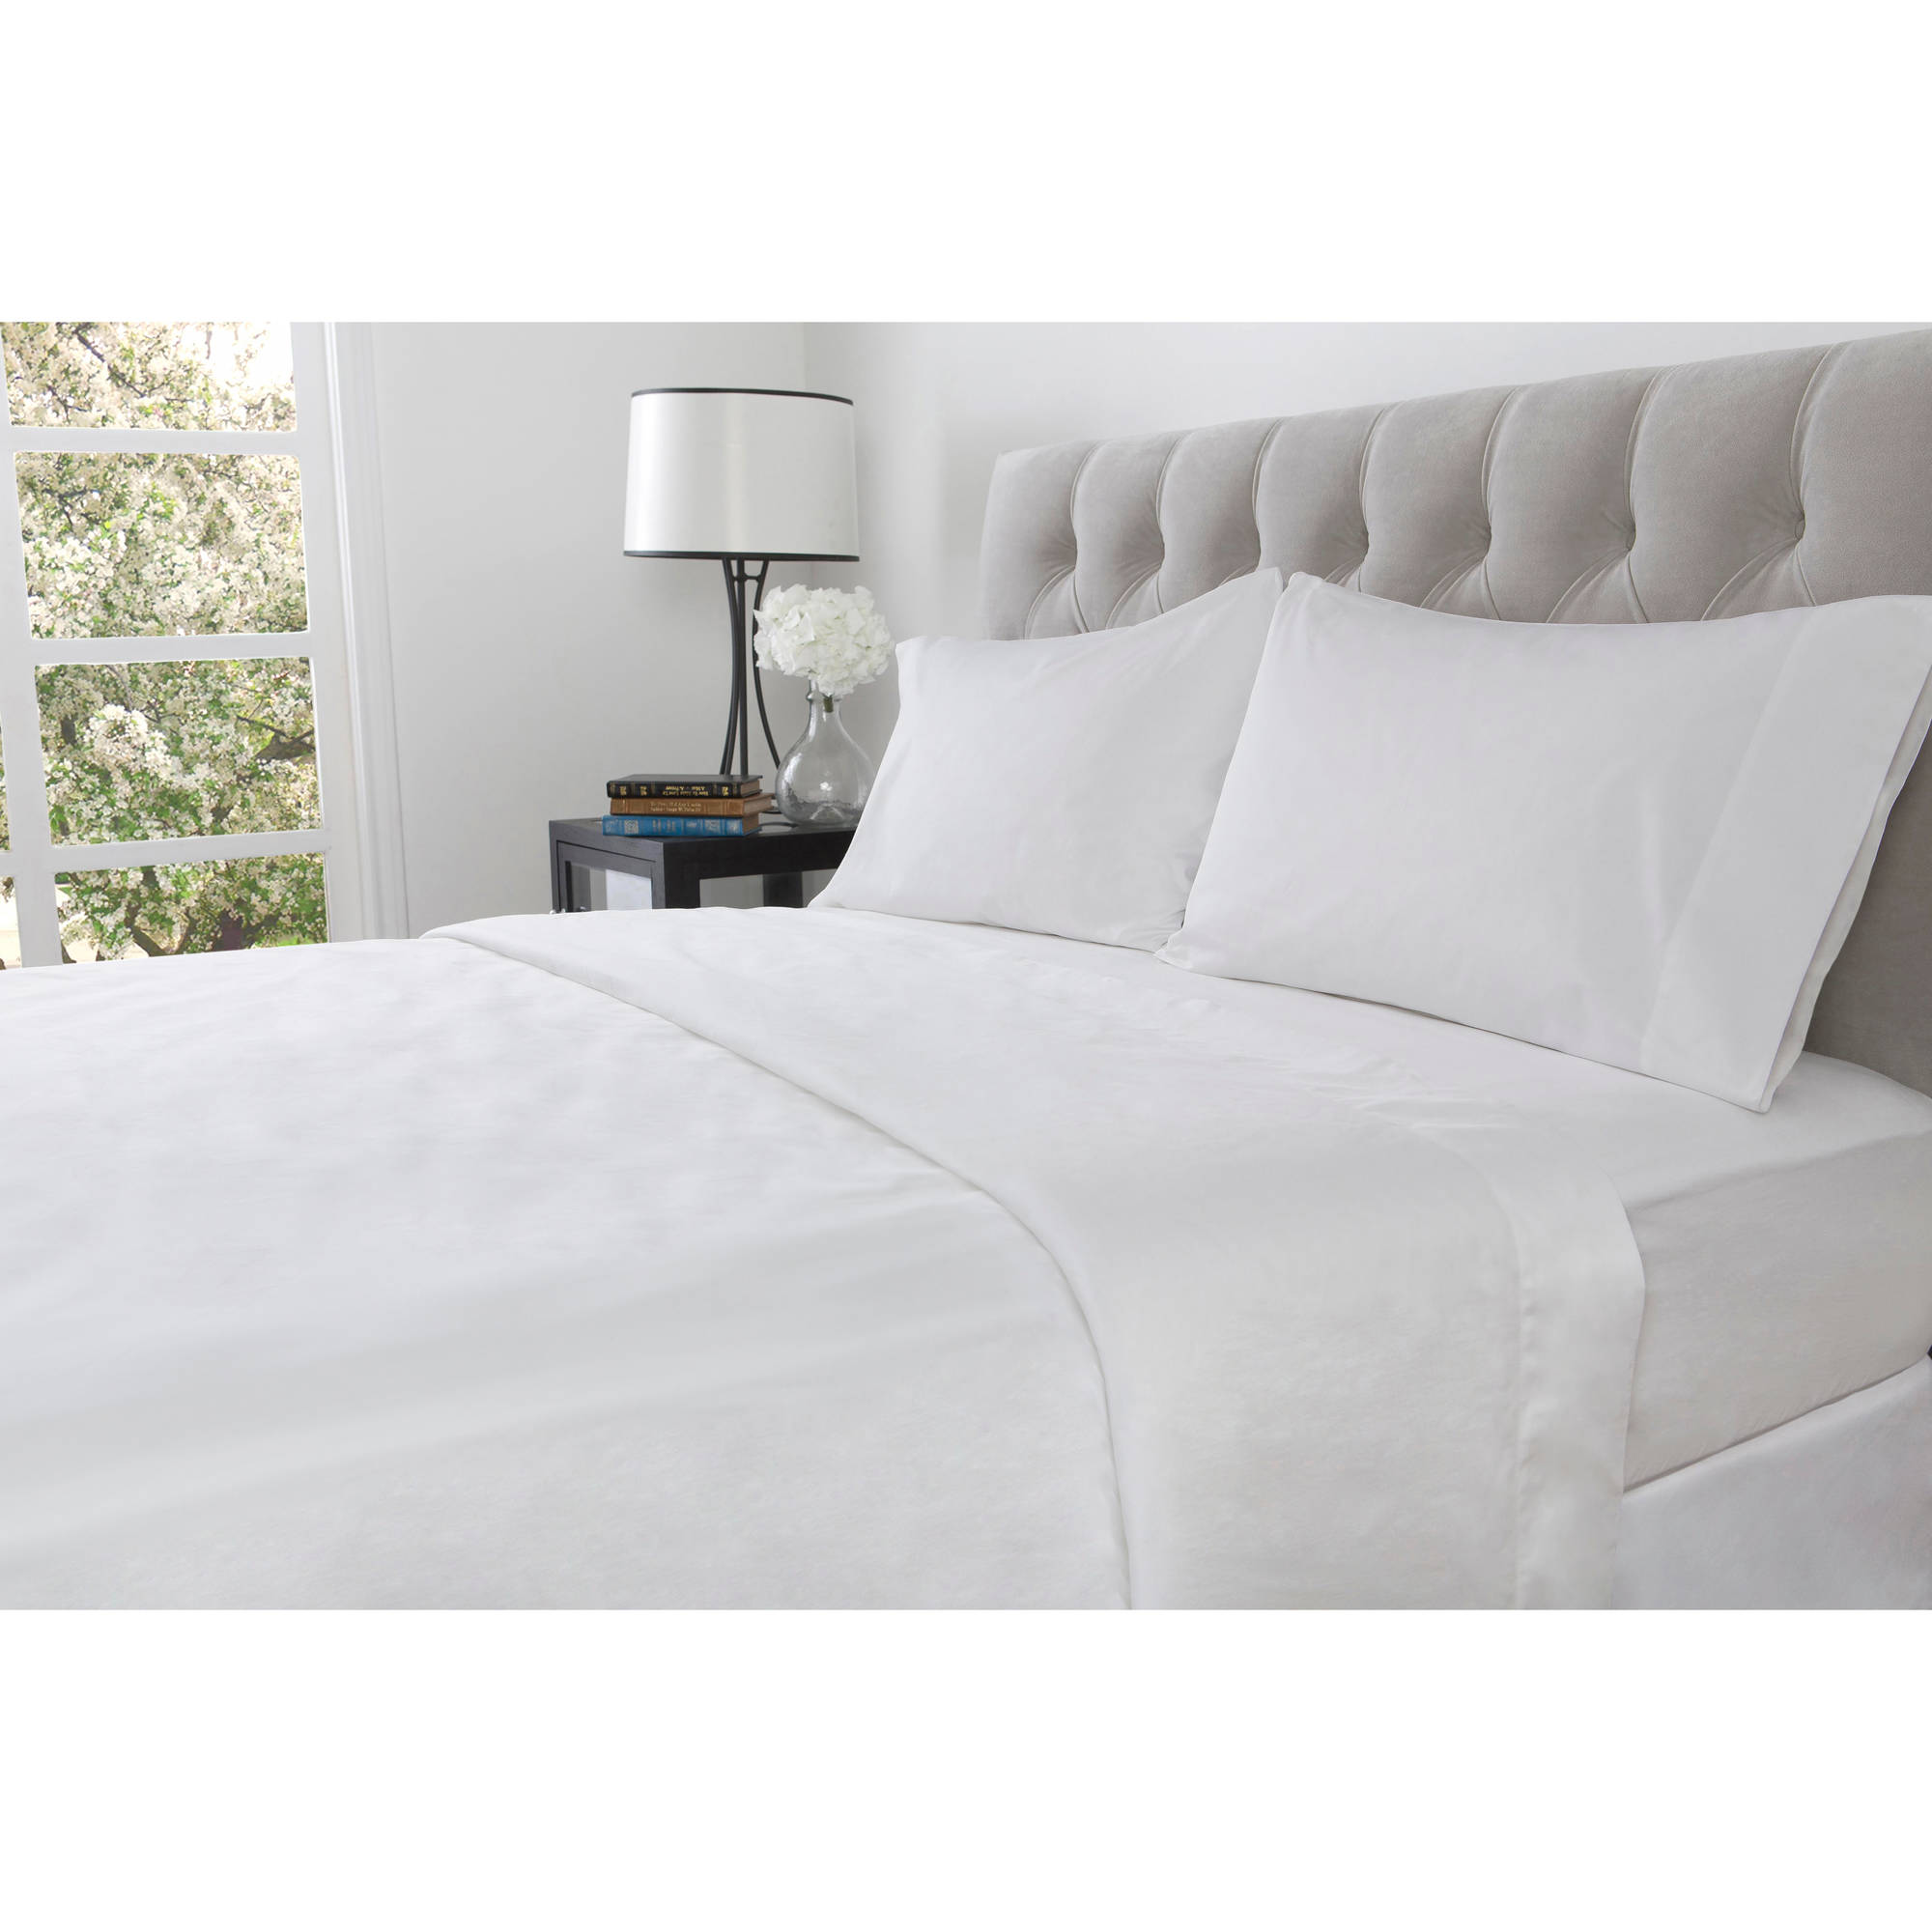 hotel style 600 thread count opti fit sheet set image 2 of 5 - Thread Count Sheets